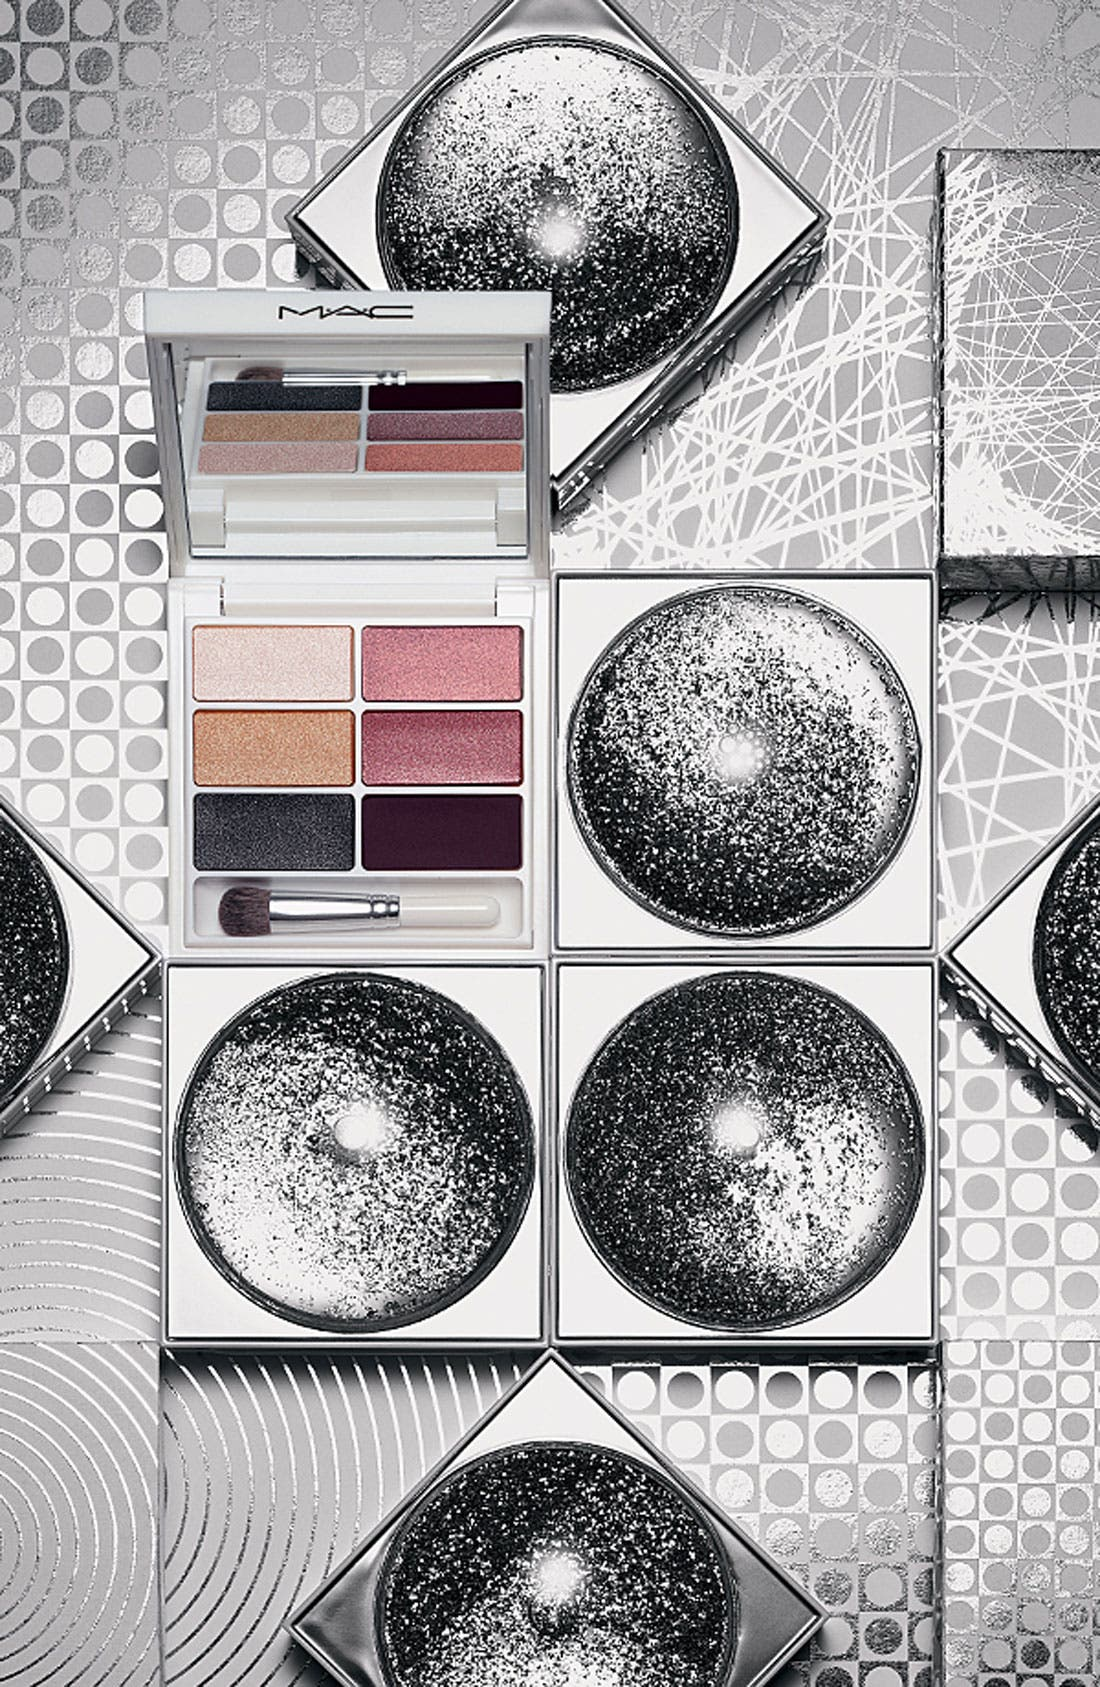 M·A·C 'Snowglobe - Cool' Eyeshadow,                             Alternate thumbnail 2, color,                             000